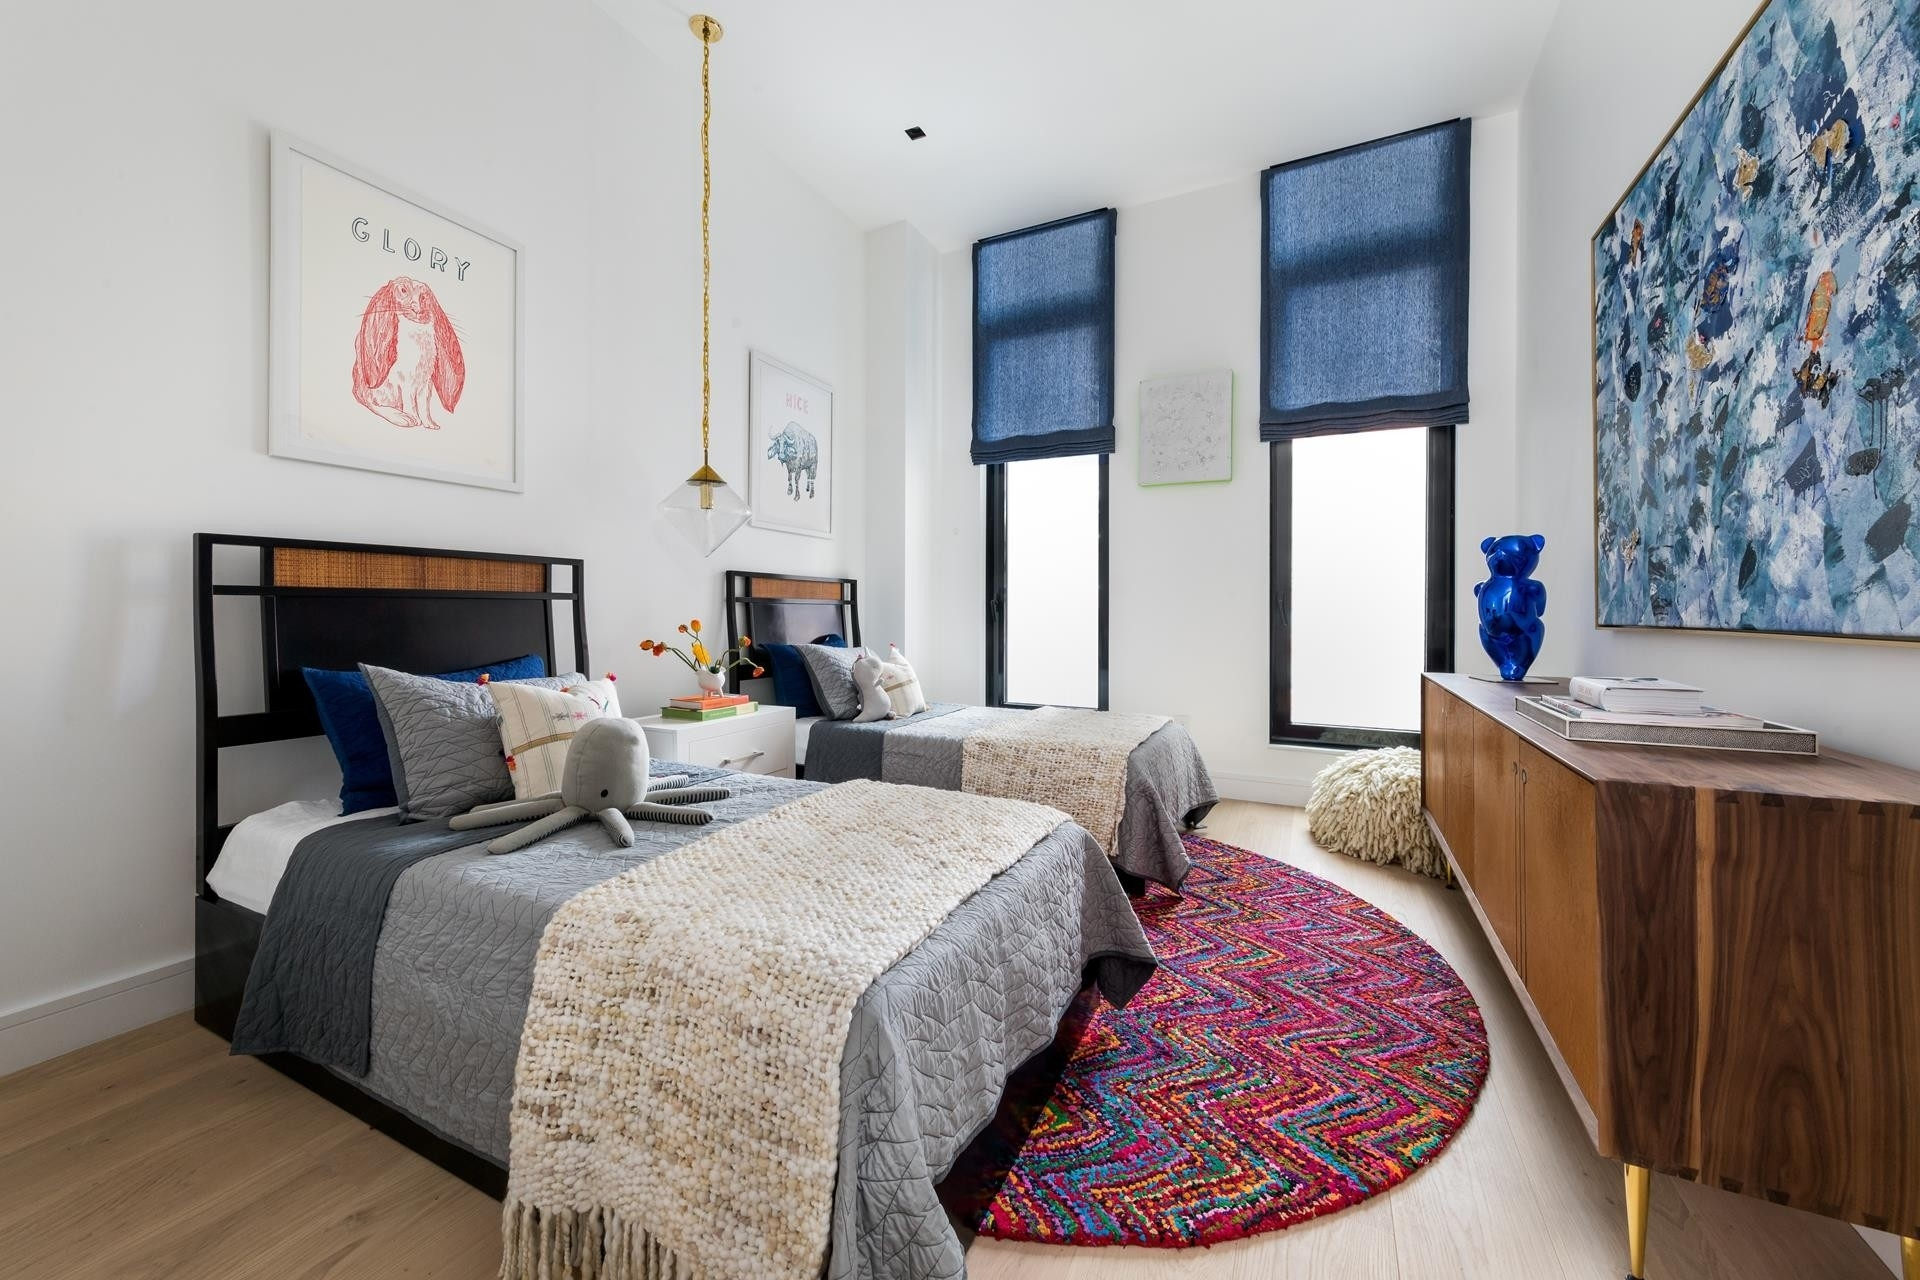 9. Condominiums for Sale at 111 Leroy St, 4 West Village, New York, NY 10014